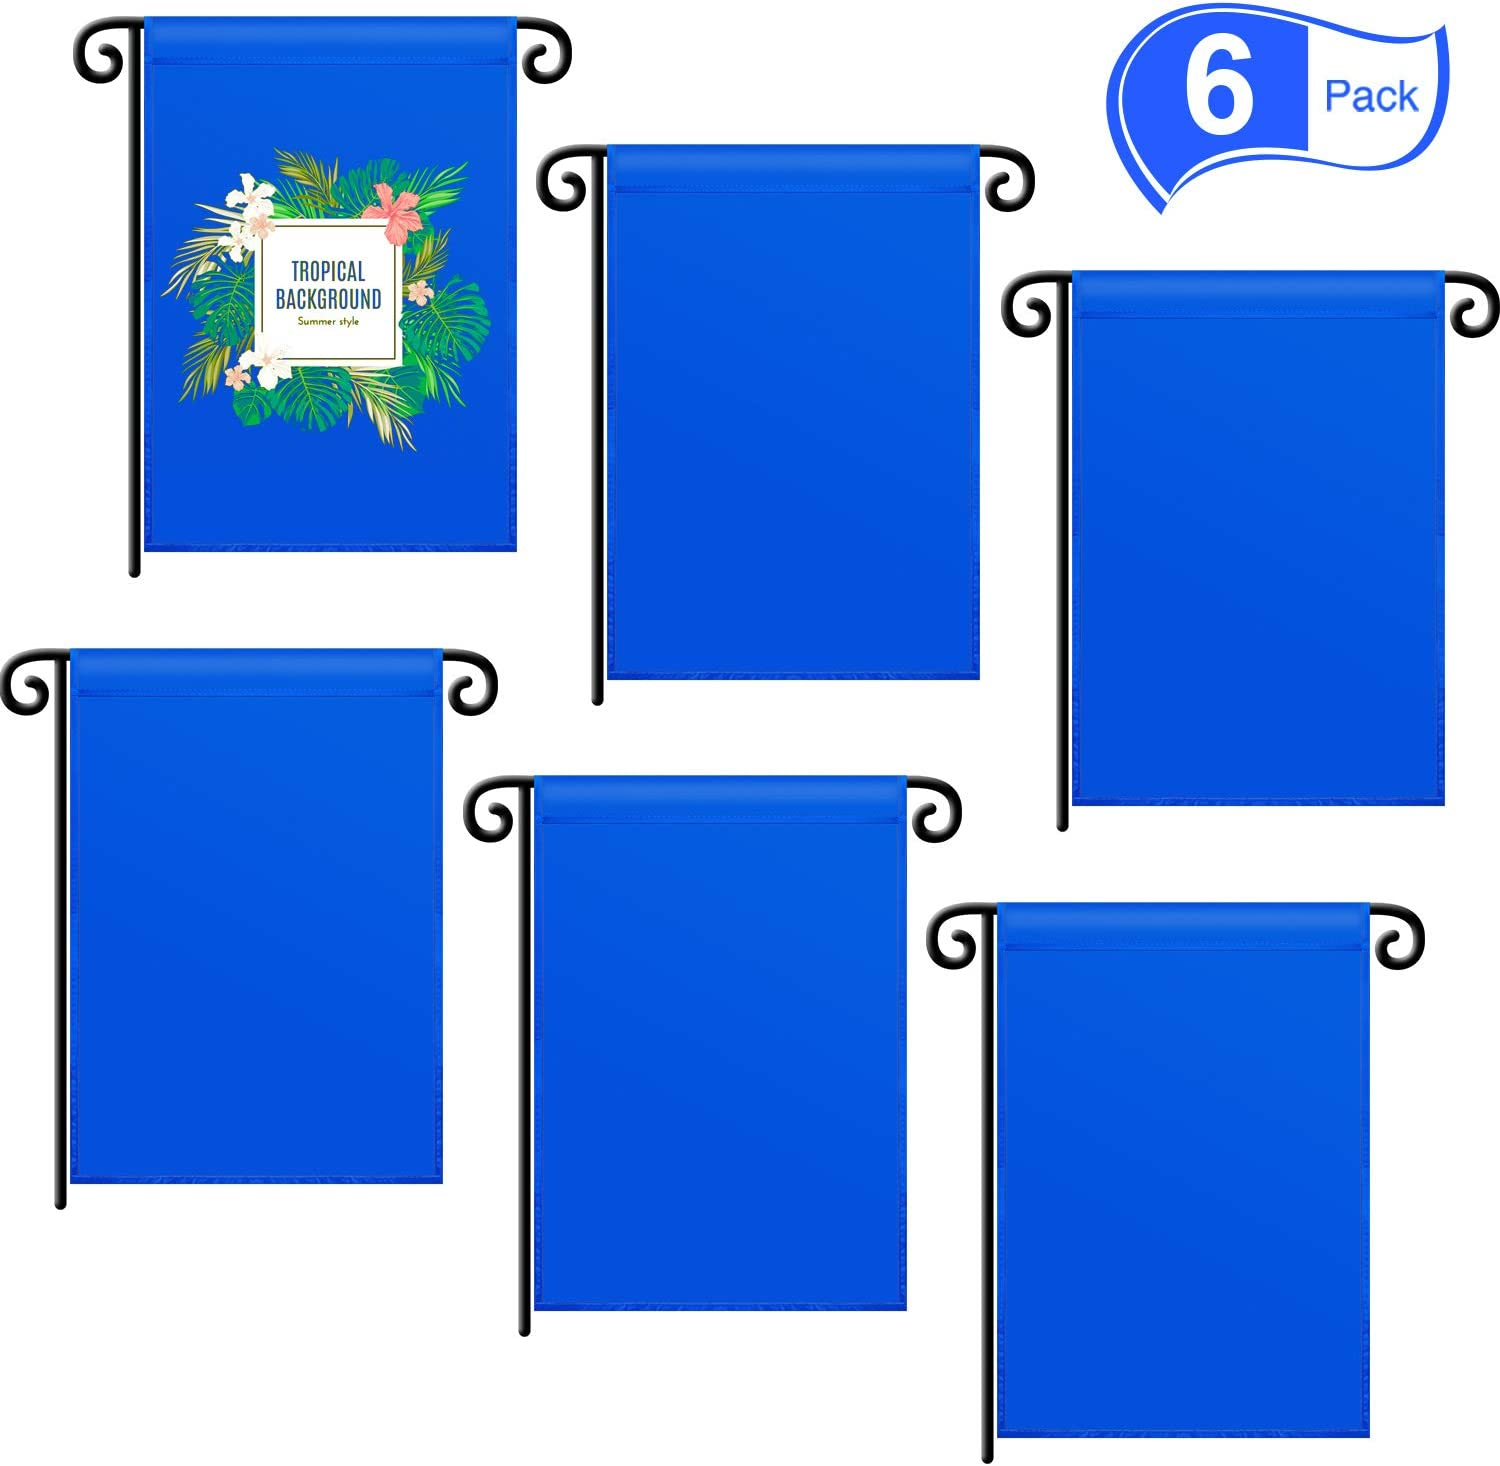 SATINIOR Double Sided Garden Flag Blank Flag DIY Garden Flag House Party Decorative Flag for Vinyl (HTV) Indoor Outdoor Party Decoration, Home Decoration, School Decoration (6, Blue)